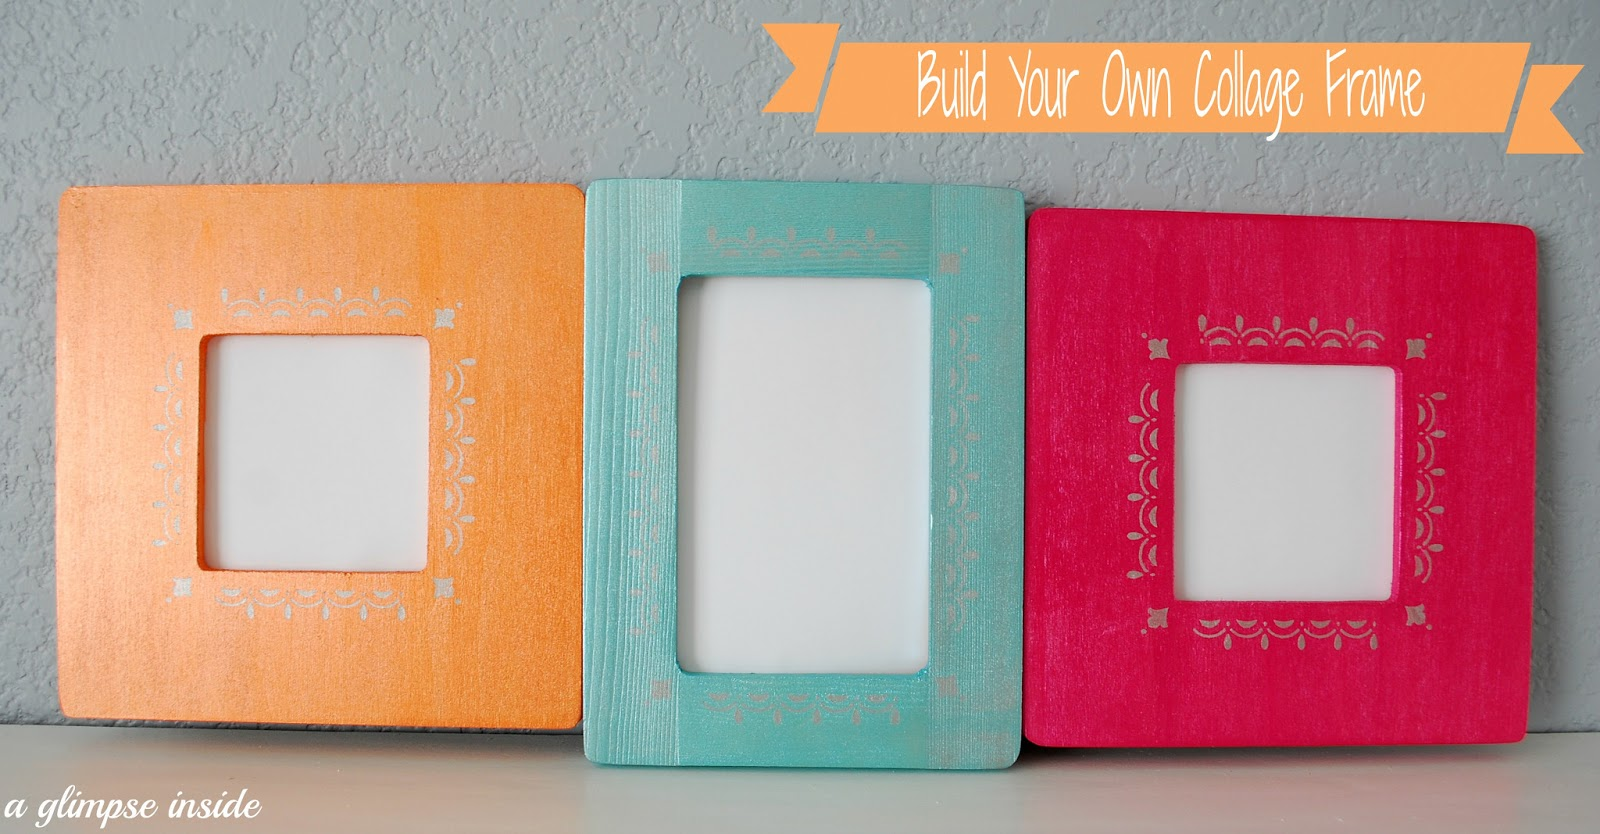 A glimpse inside build your own collage frame super easy build your own collage frame super easy jeuxipadfo Images